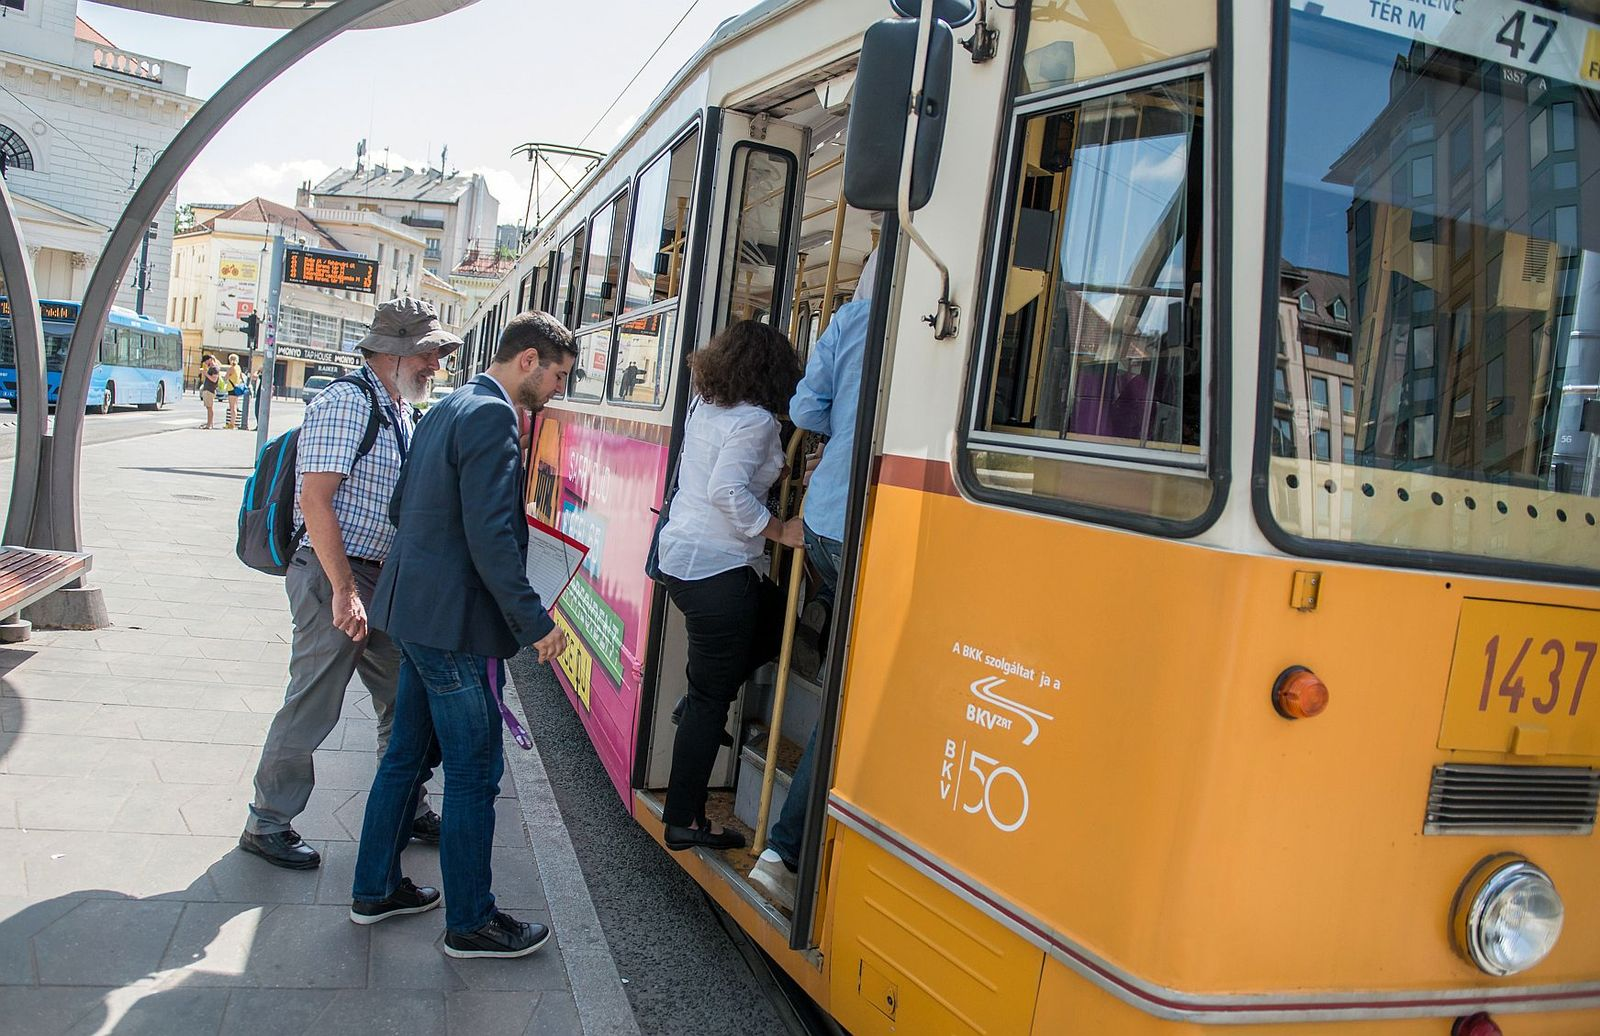 People boarding on the tram in Budapest